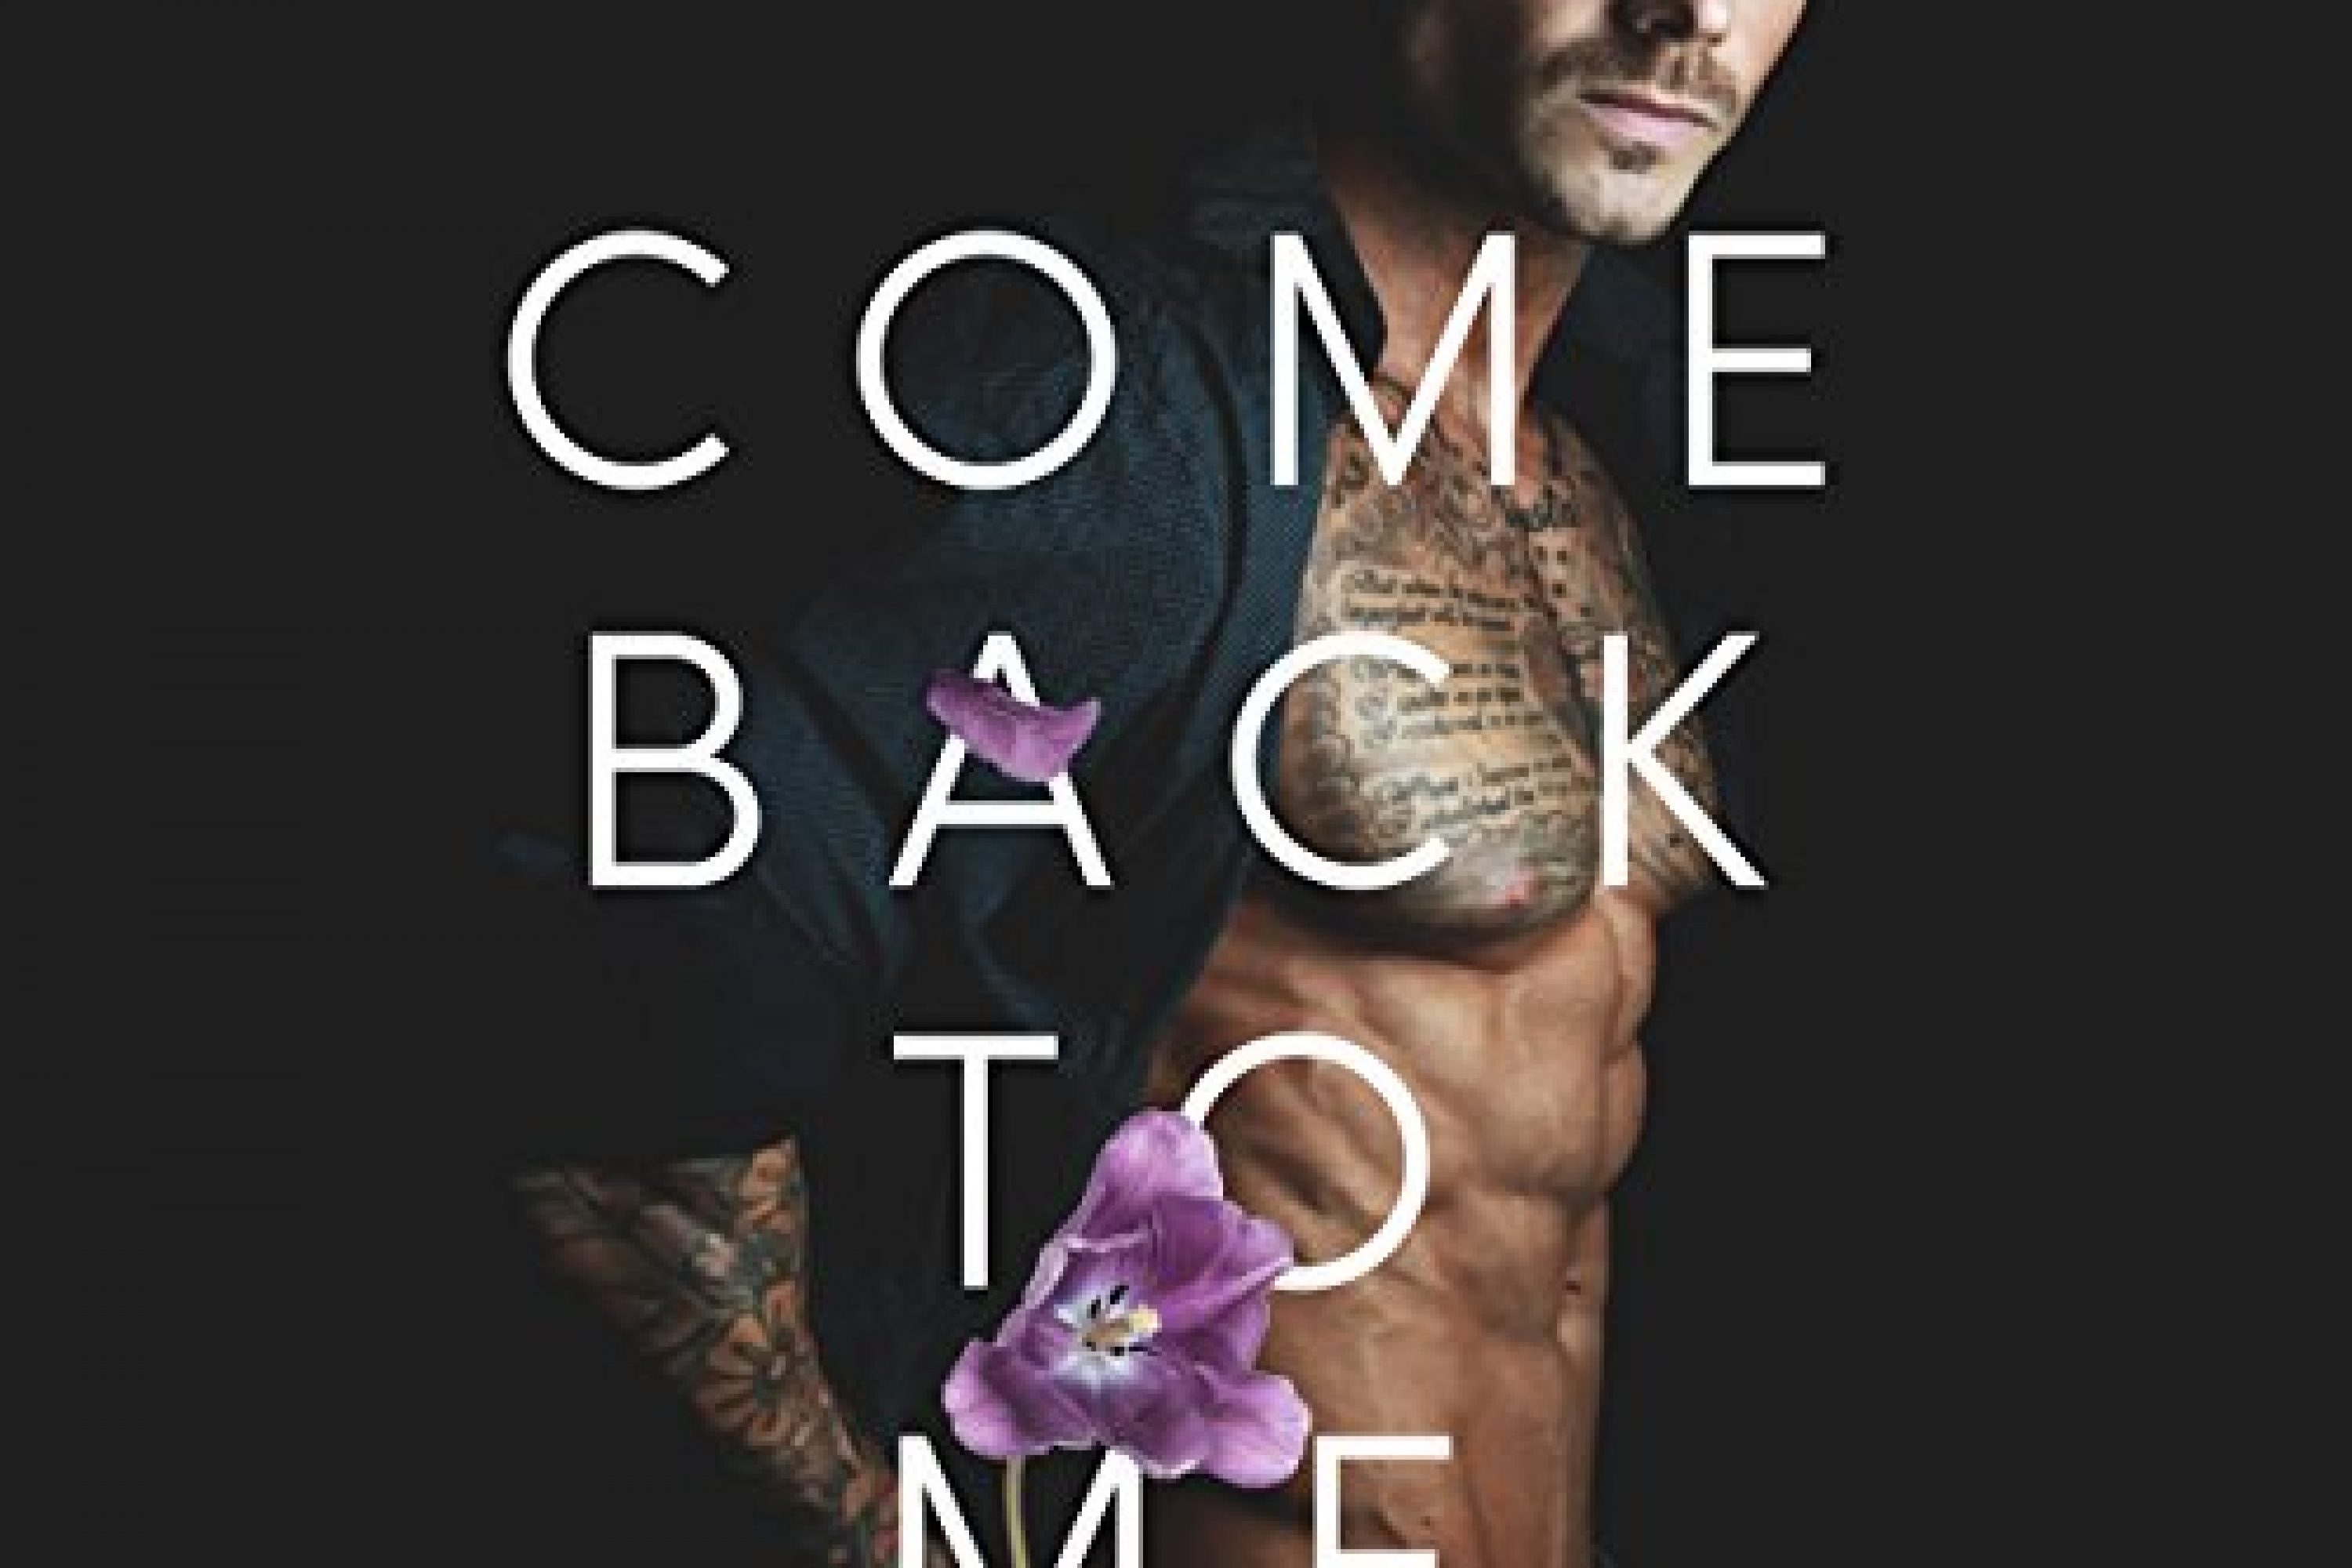 Audiobook Review: Come Back to Me by Kathy Coopmans